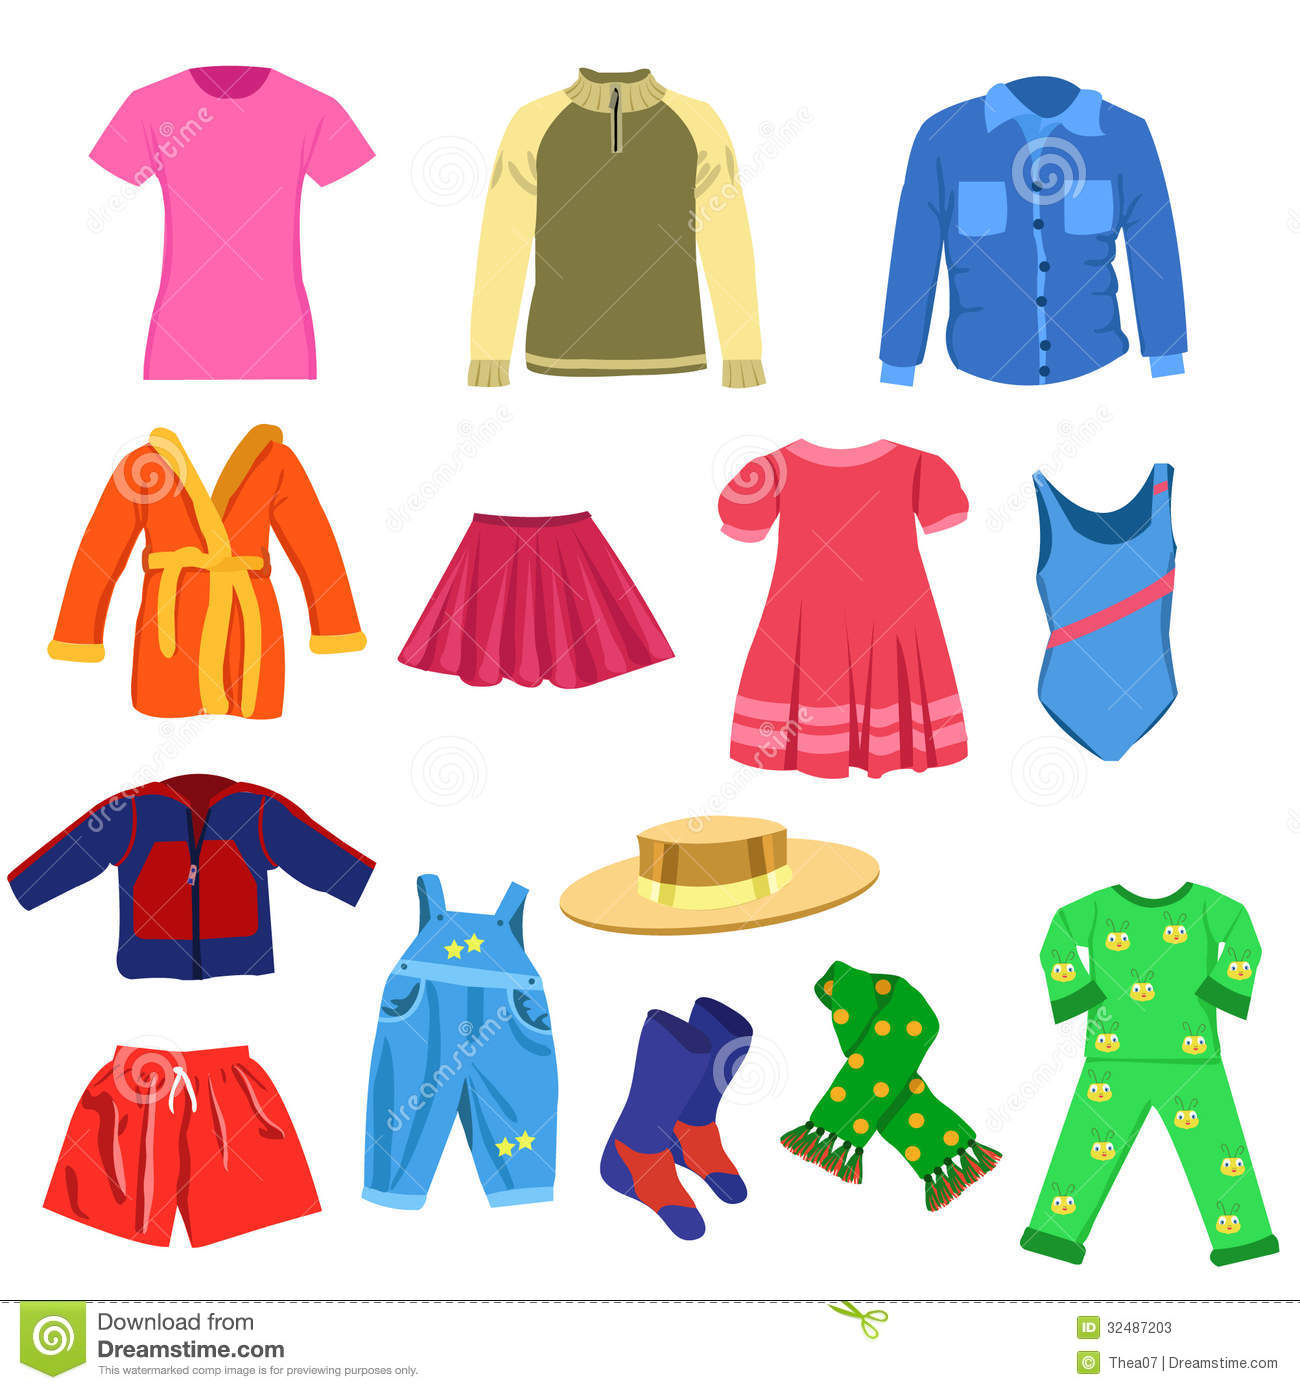 Background clipart clothes #4